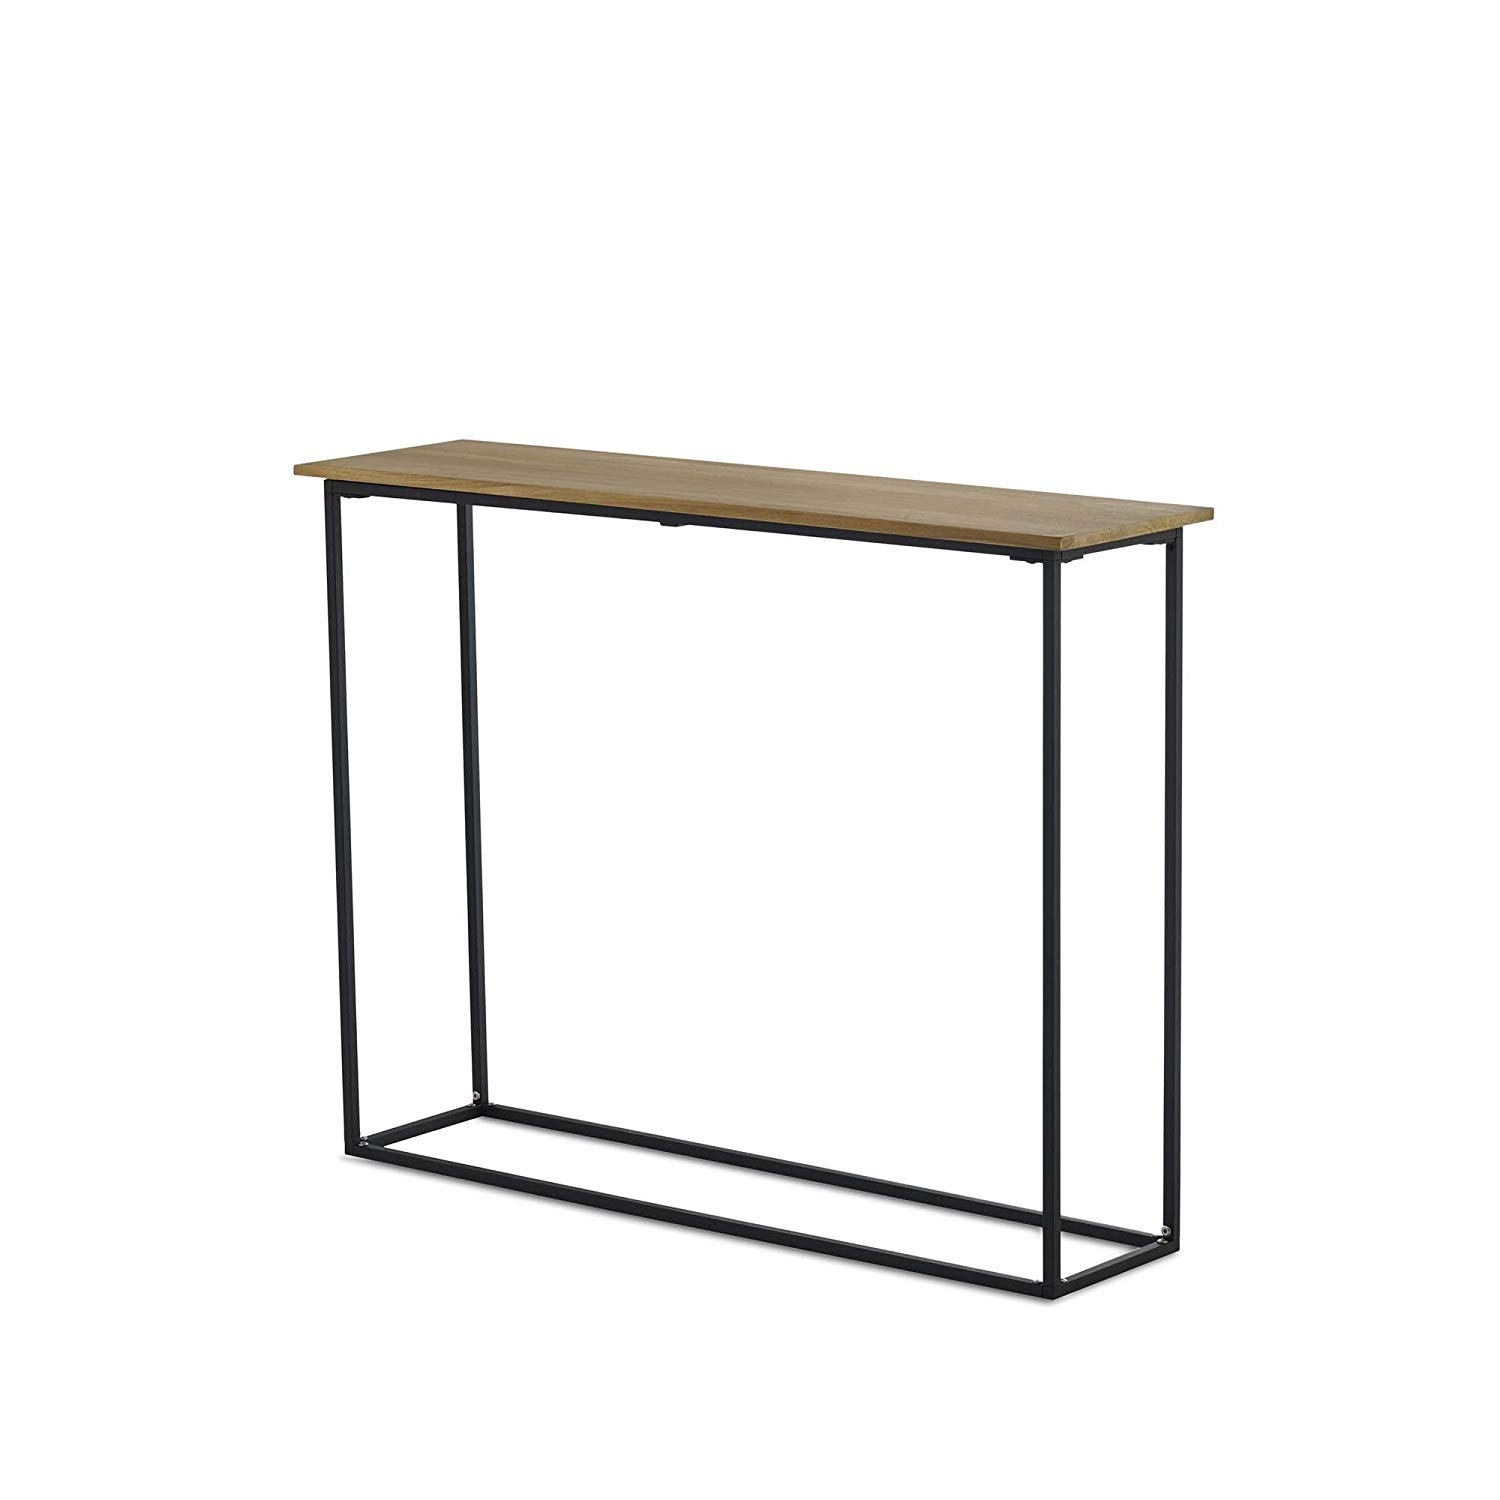 design ideas pietra console table accent modern teak wood and metal end black tan kitchen dining dale tiffany wisteria lamp circle coffee with storage outdoor chairs for balcony